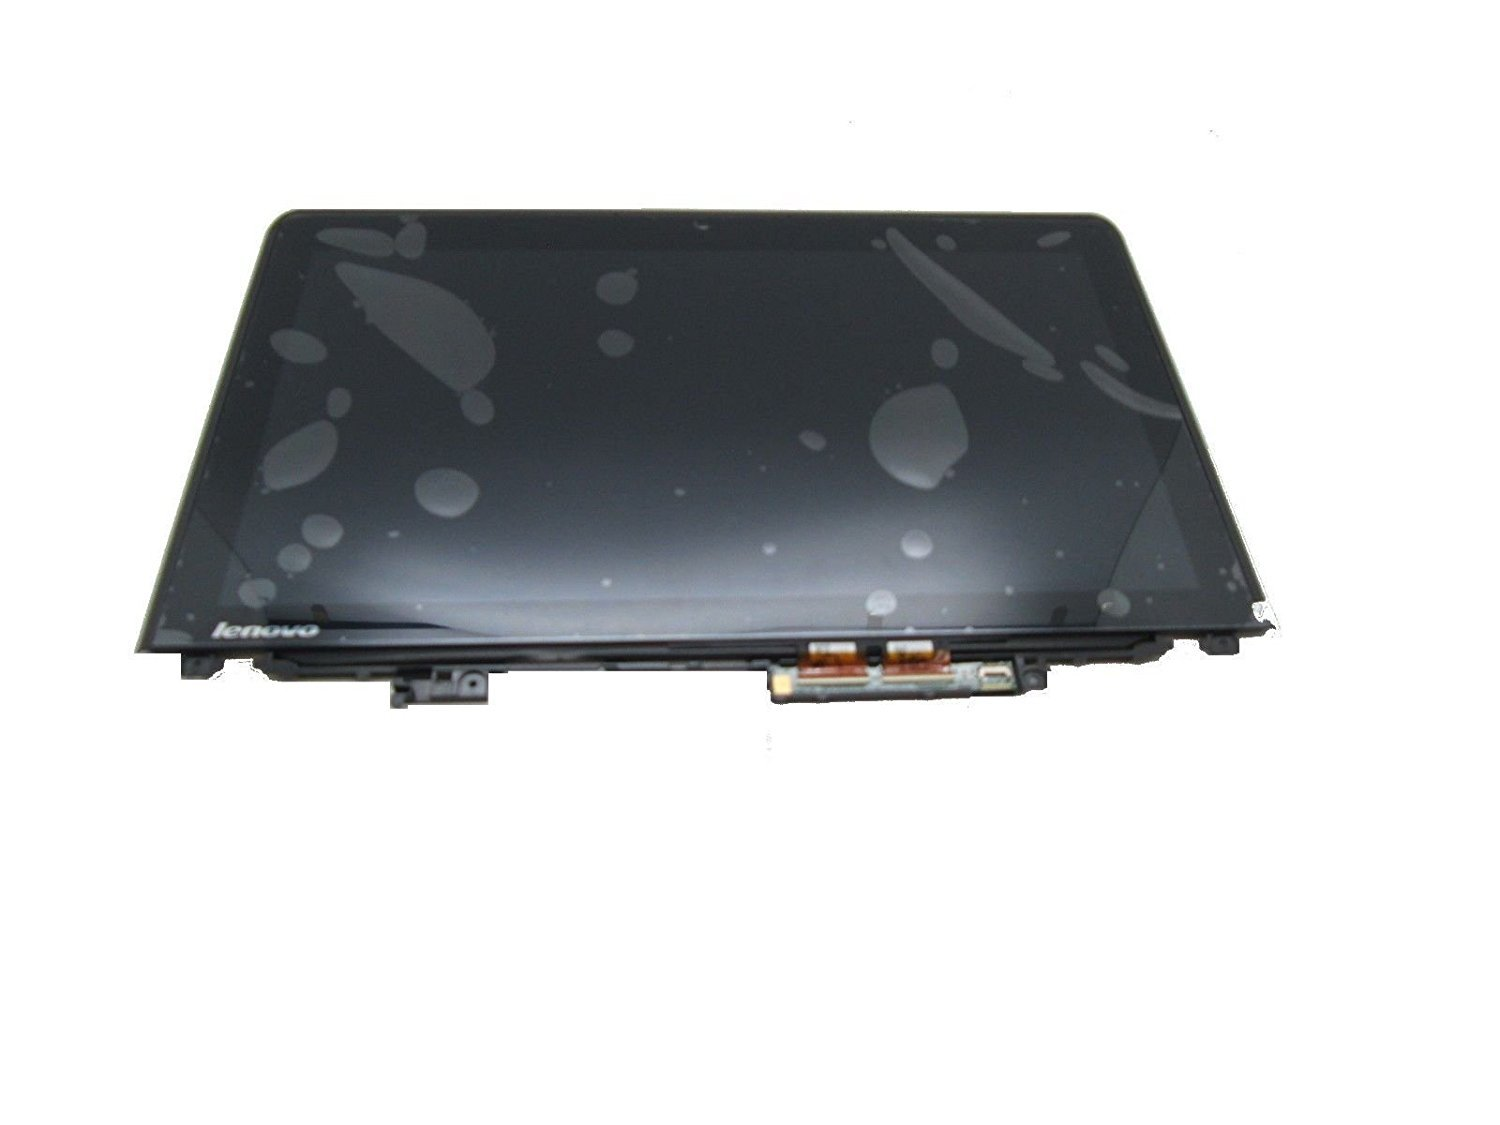 Amazon.com: New Genuine Lenovo ThinkPad Yoga 12 FHD W/Ditz ...